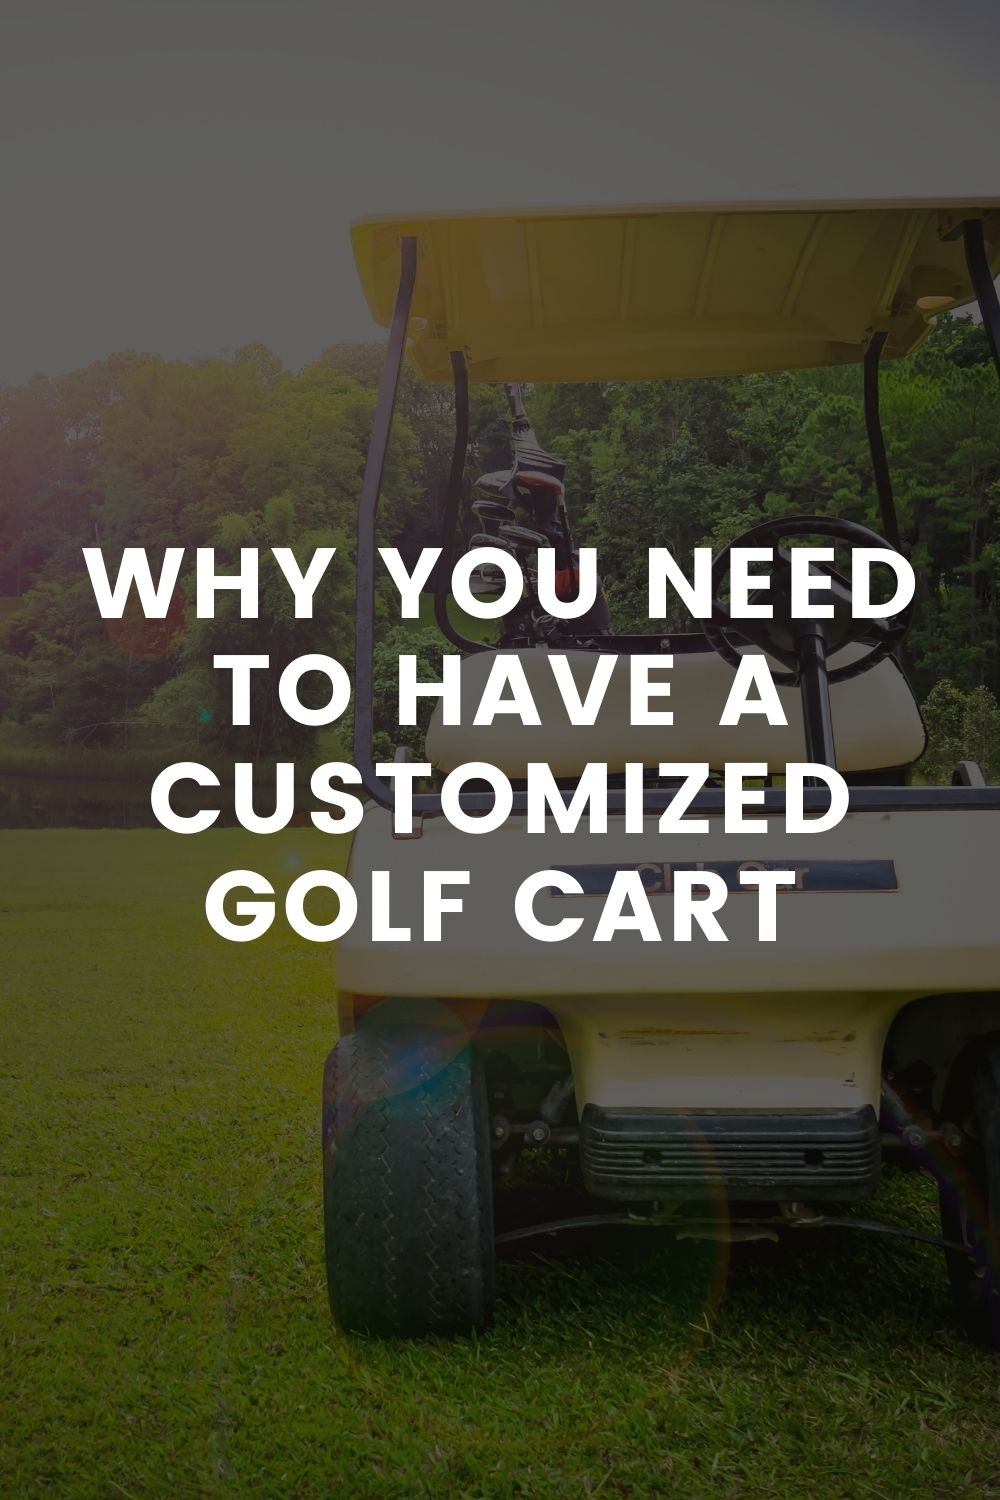 Why You Need to Have a Customized Golf Cart